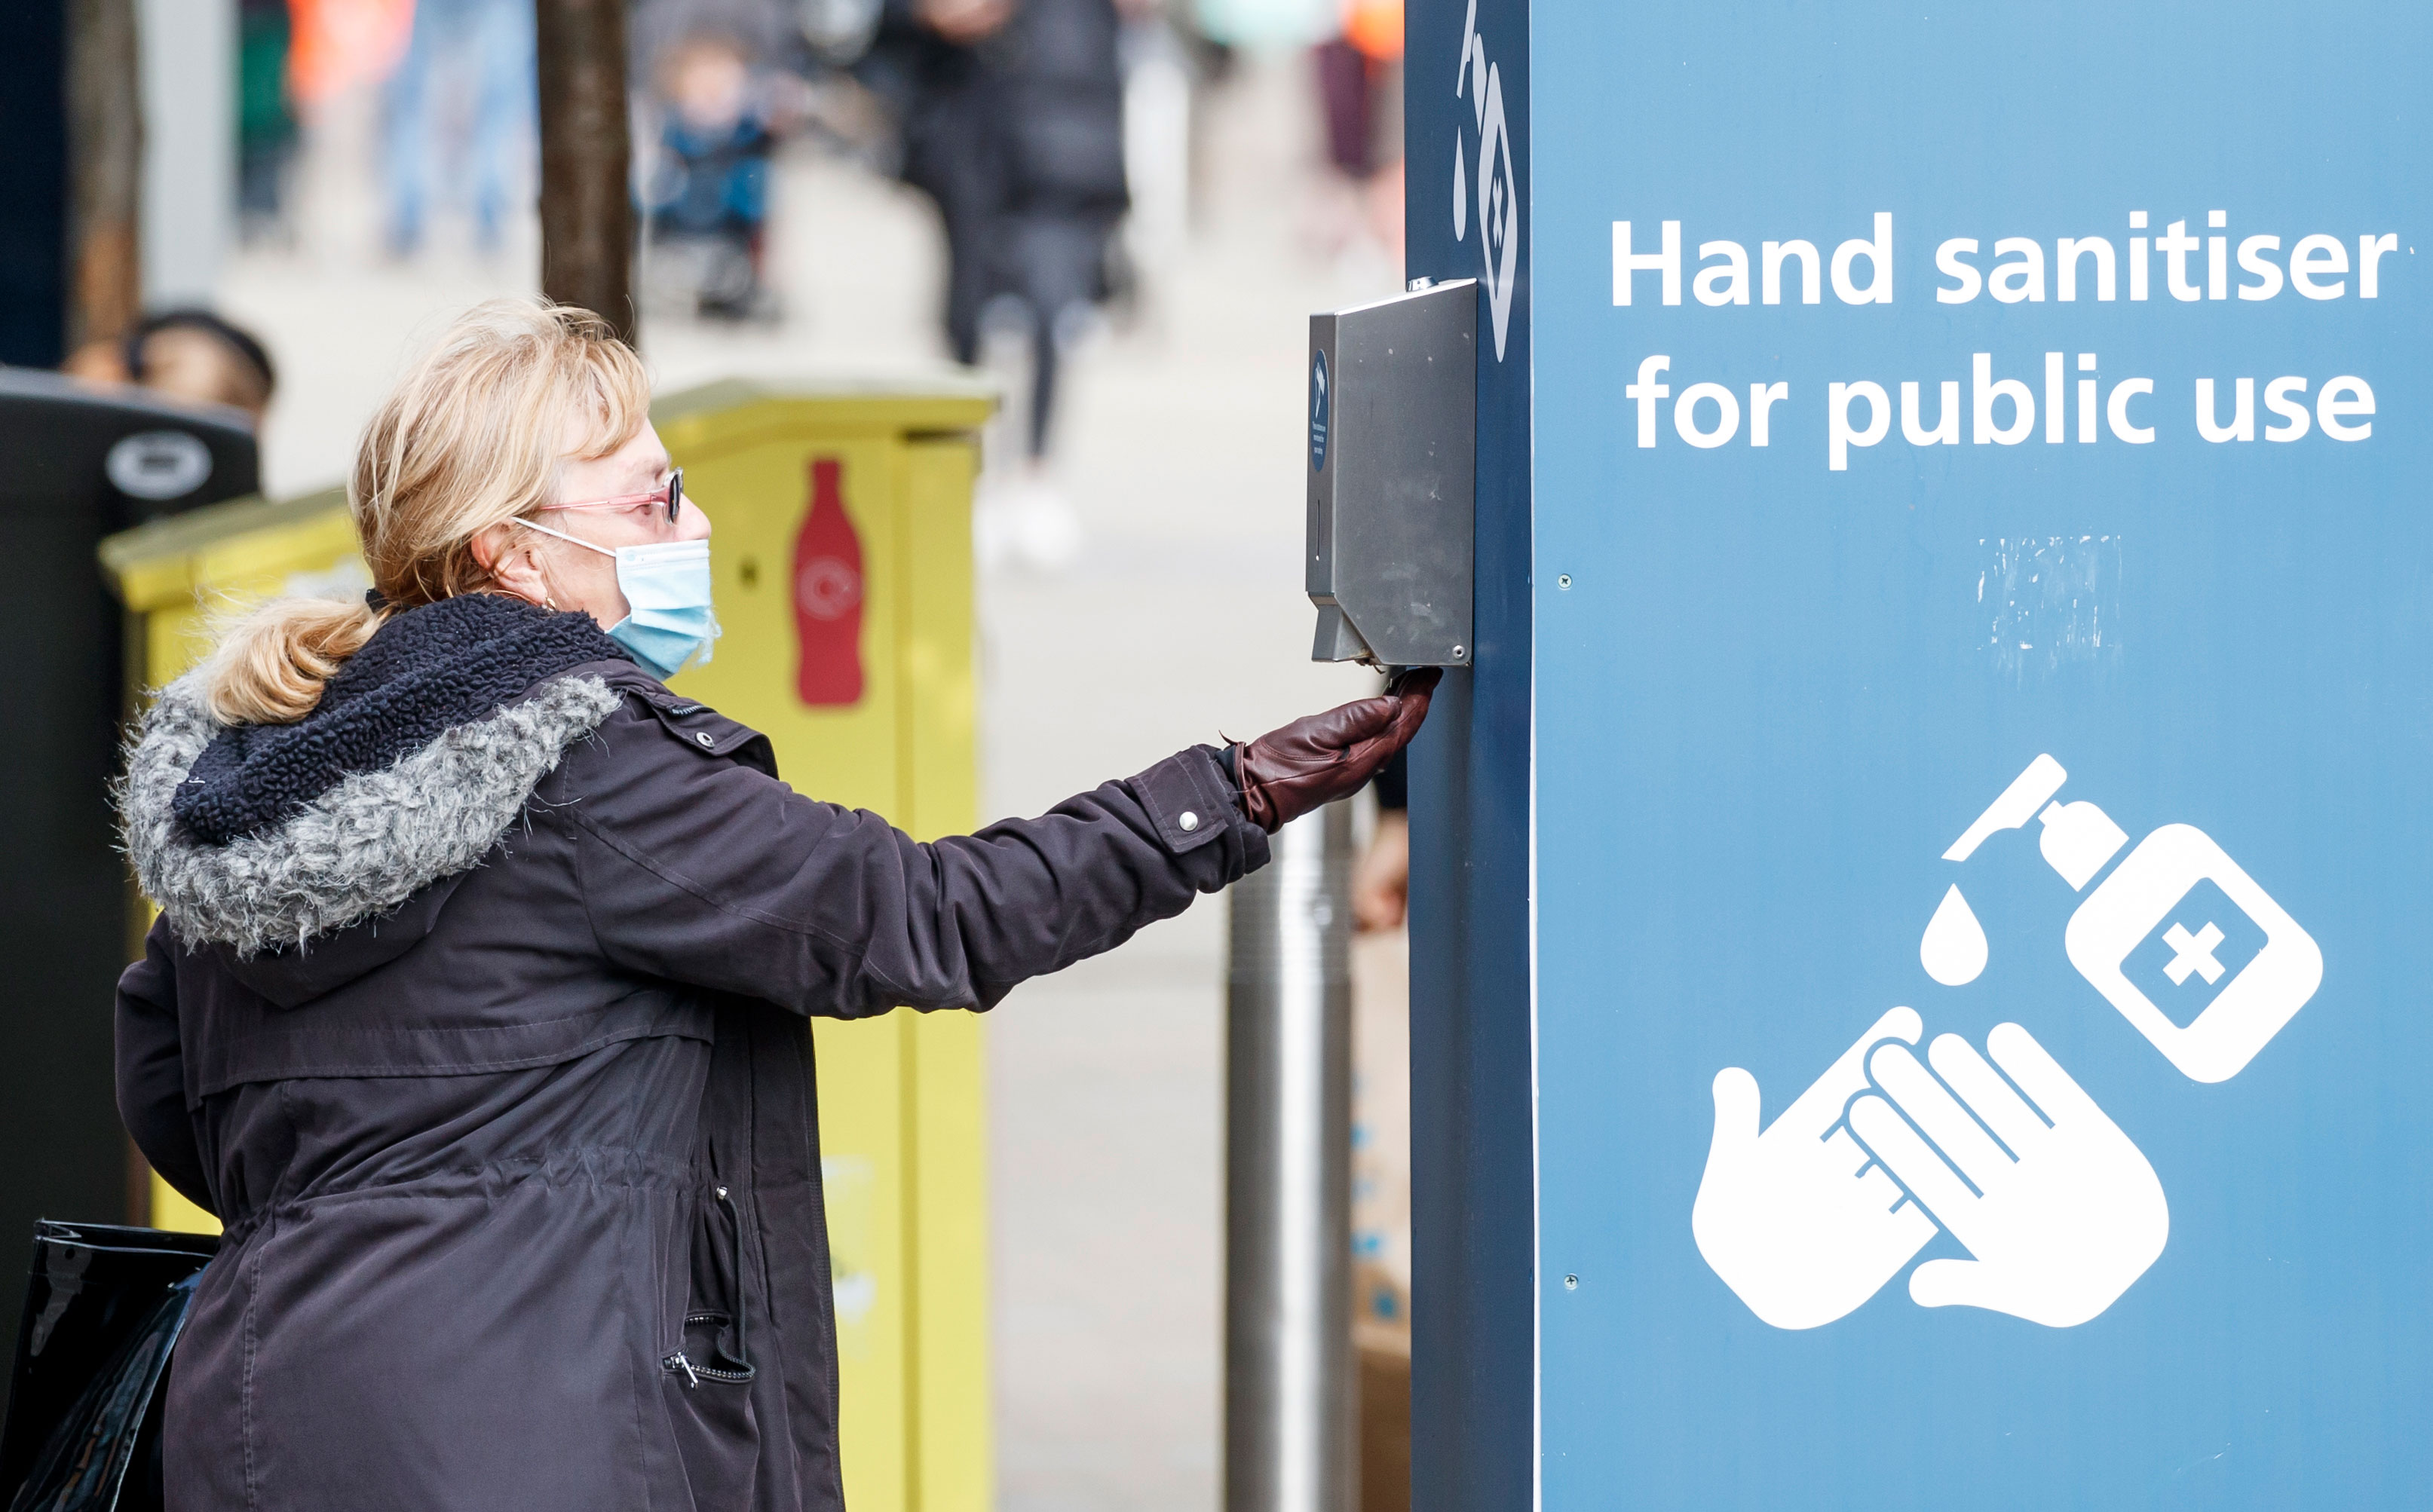 A woman uses hand sanitizer in Leeds, England, on September 11.